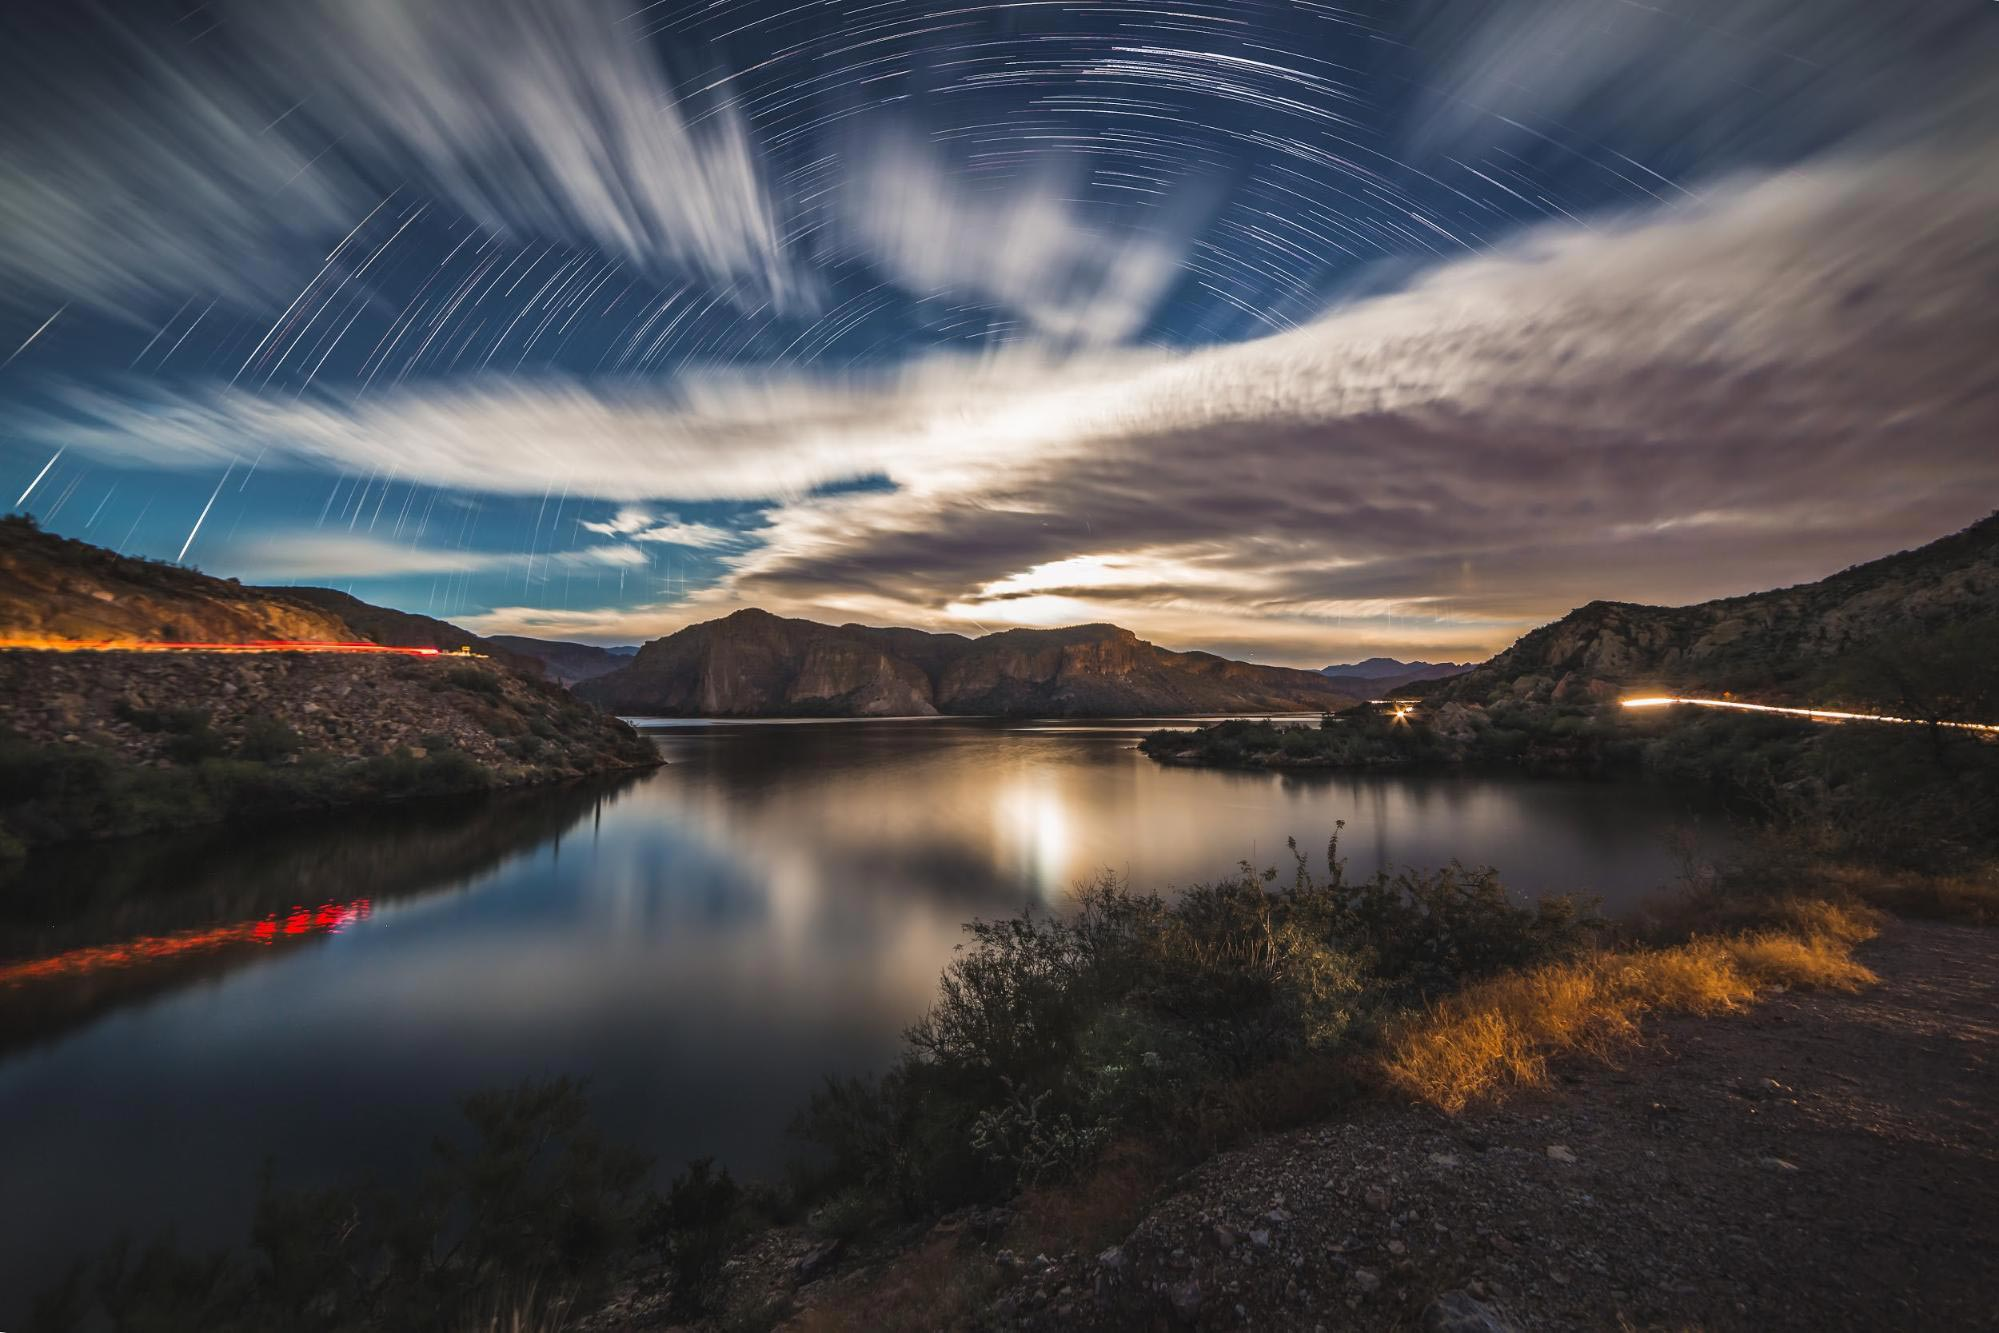 https://www.lonelyspeck.com/star-trails-and-moonlit-landscapes-tutorial/